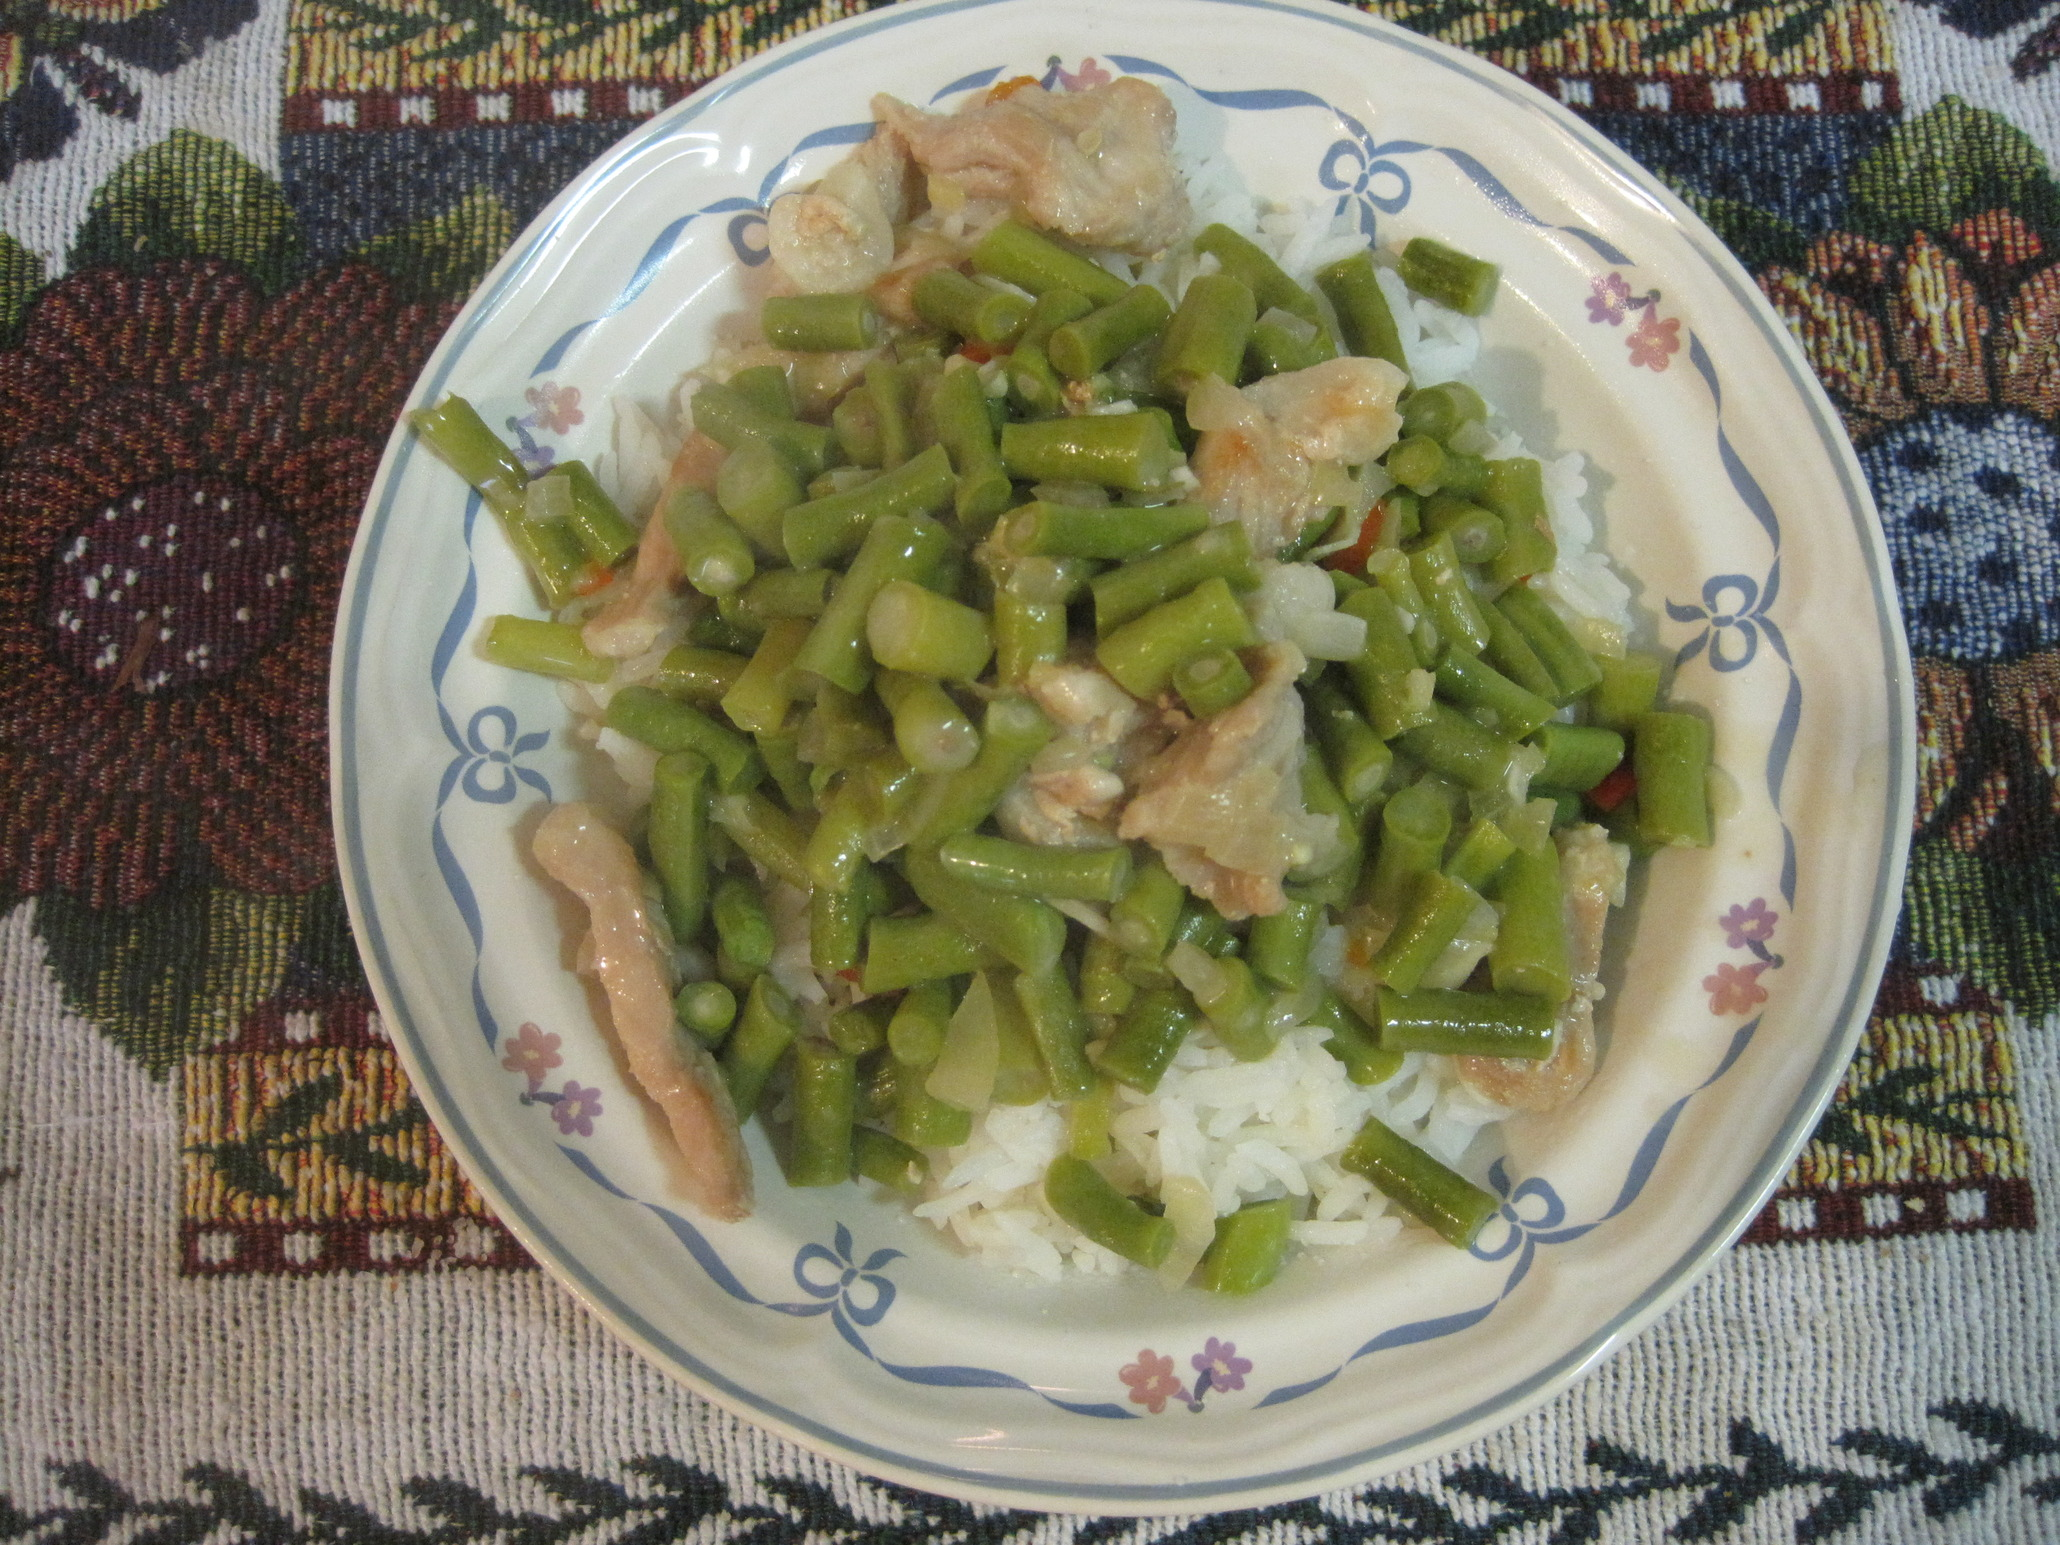 Yard-long Beans with Coconut Milk